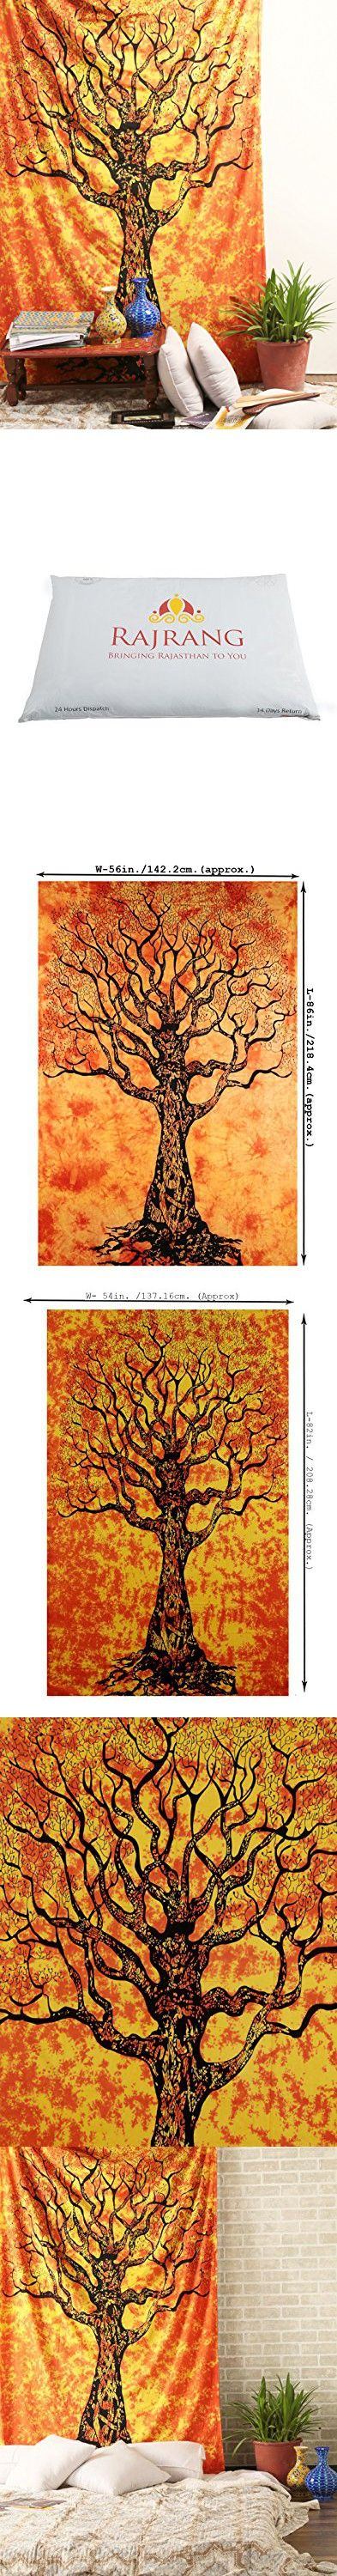 Tree of Life Tapestry , Hippie Tapestries , Bohemian Boho Coverlet , Dorm Tapestry Sheet ,Wall Tapestries, Tapestry Wall Hanging, By Rajrang